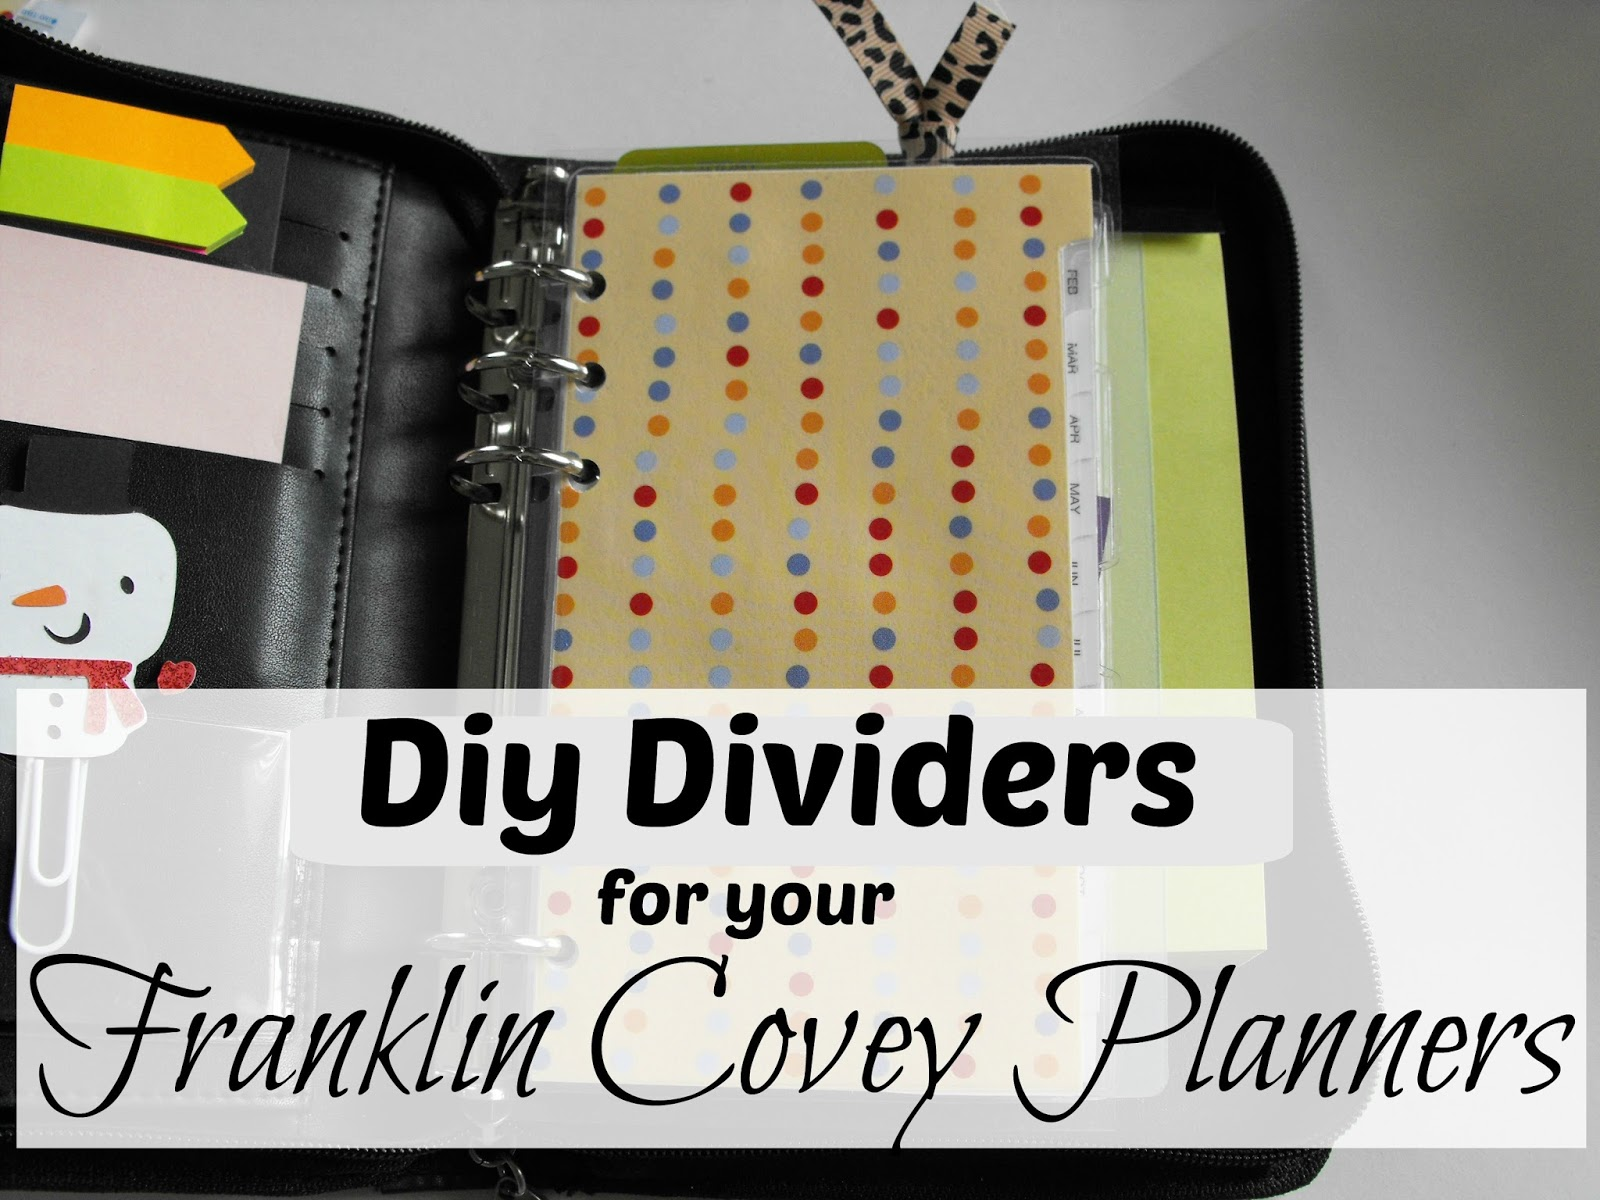 Smile for no reason: DIY Dividers for your Franklin Covey Planner